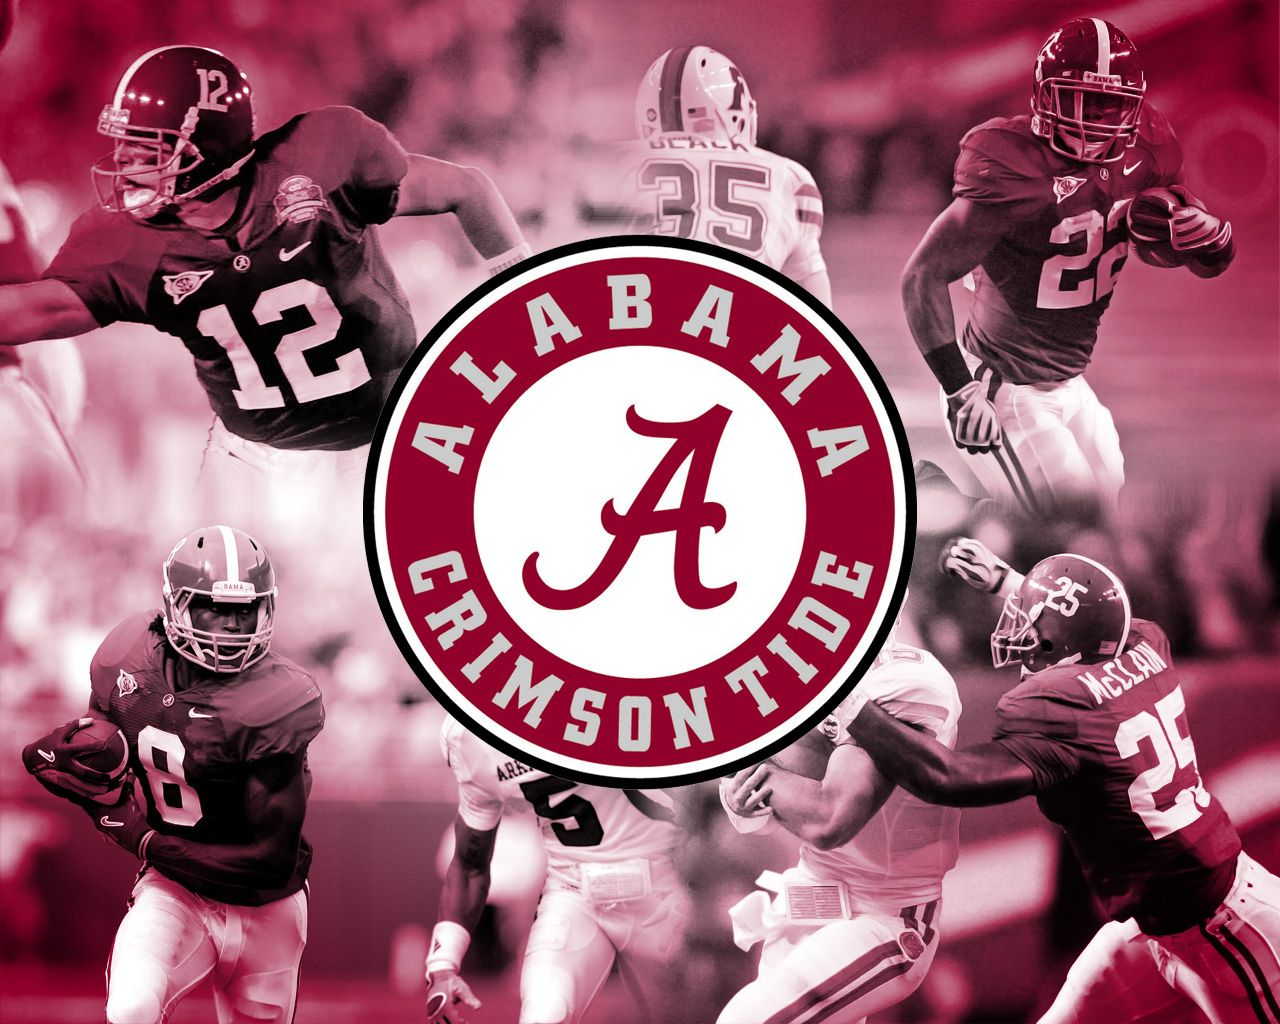 Roll Tide Wallpaper Crimson Tide Football Alabama Crimson Tide Football Alabama Crimson Tide